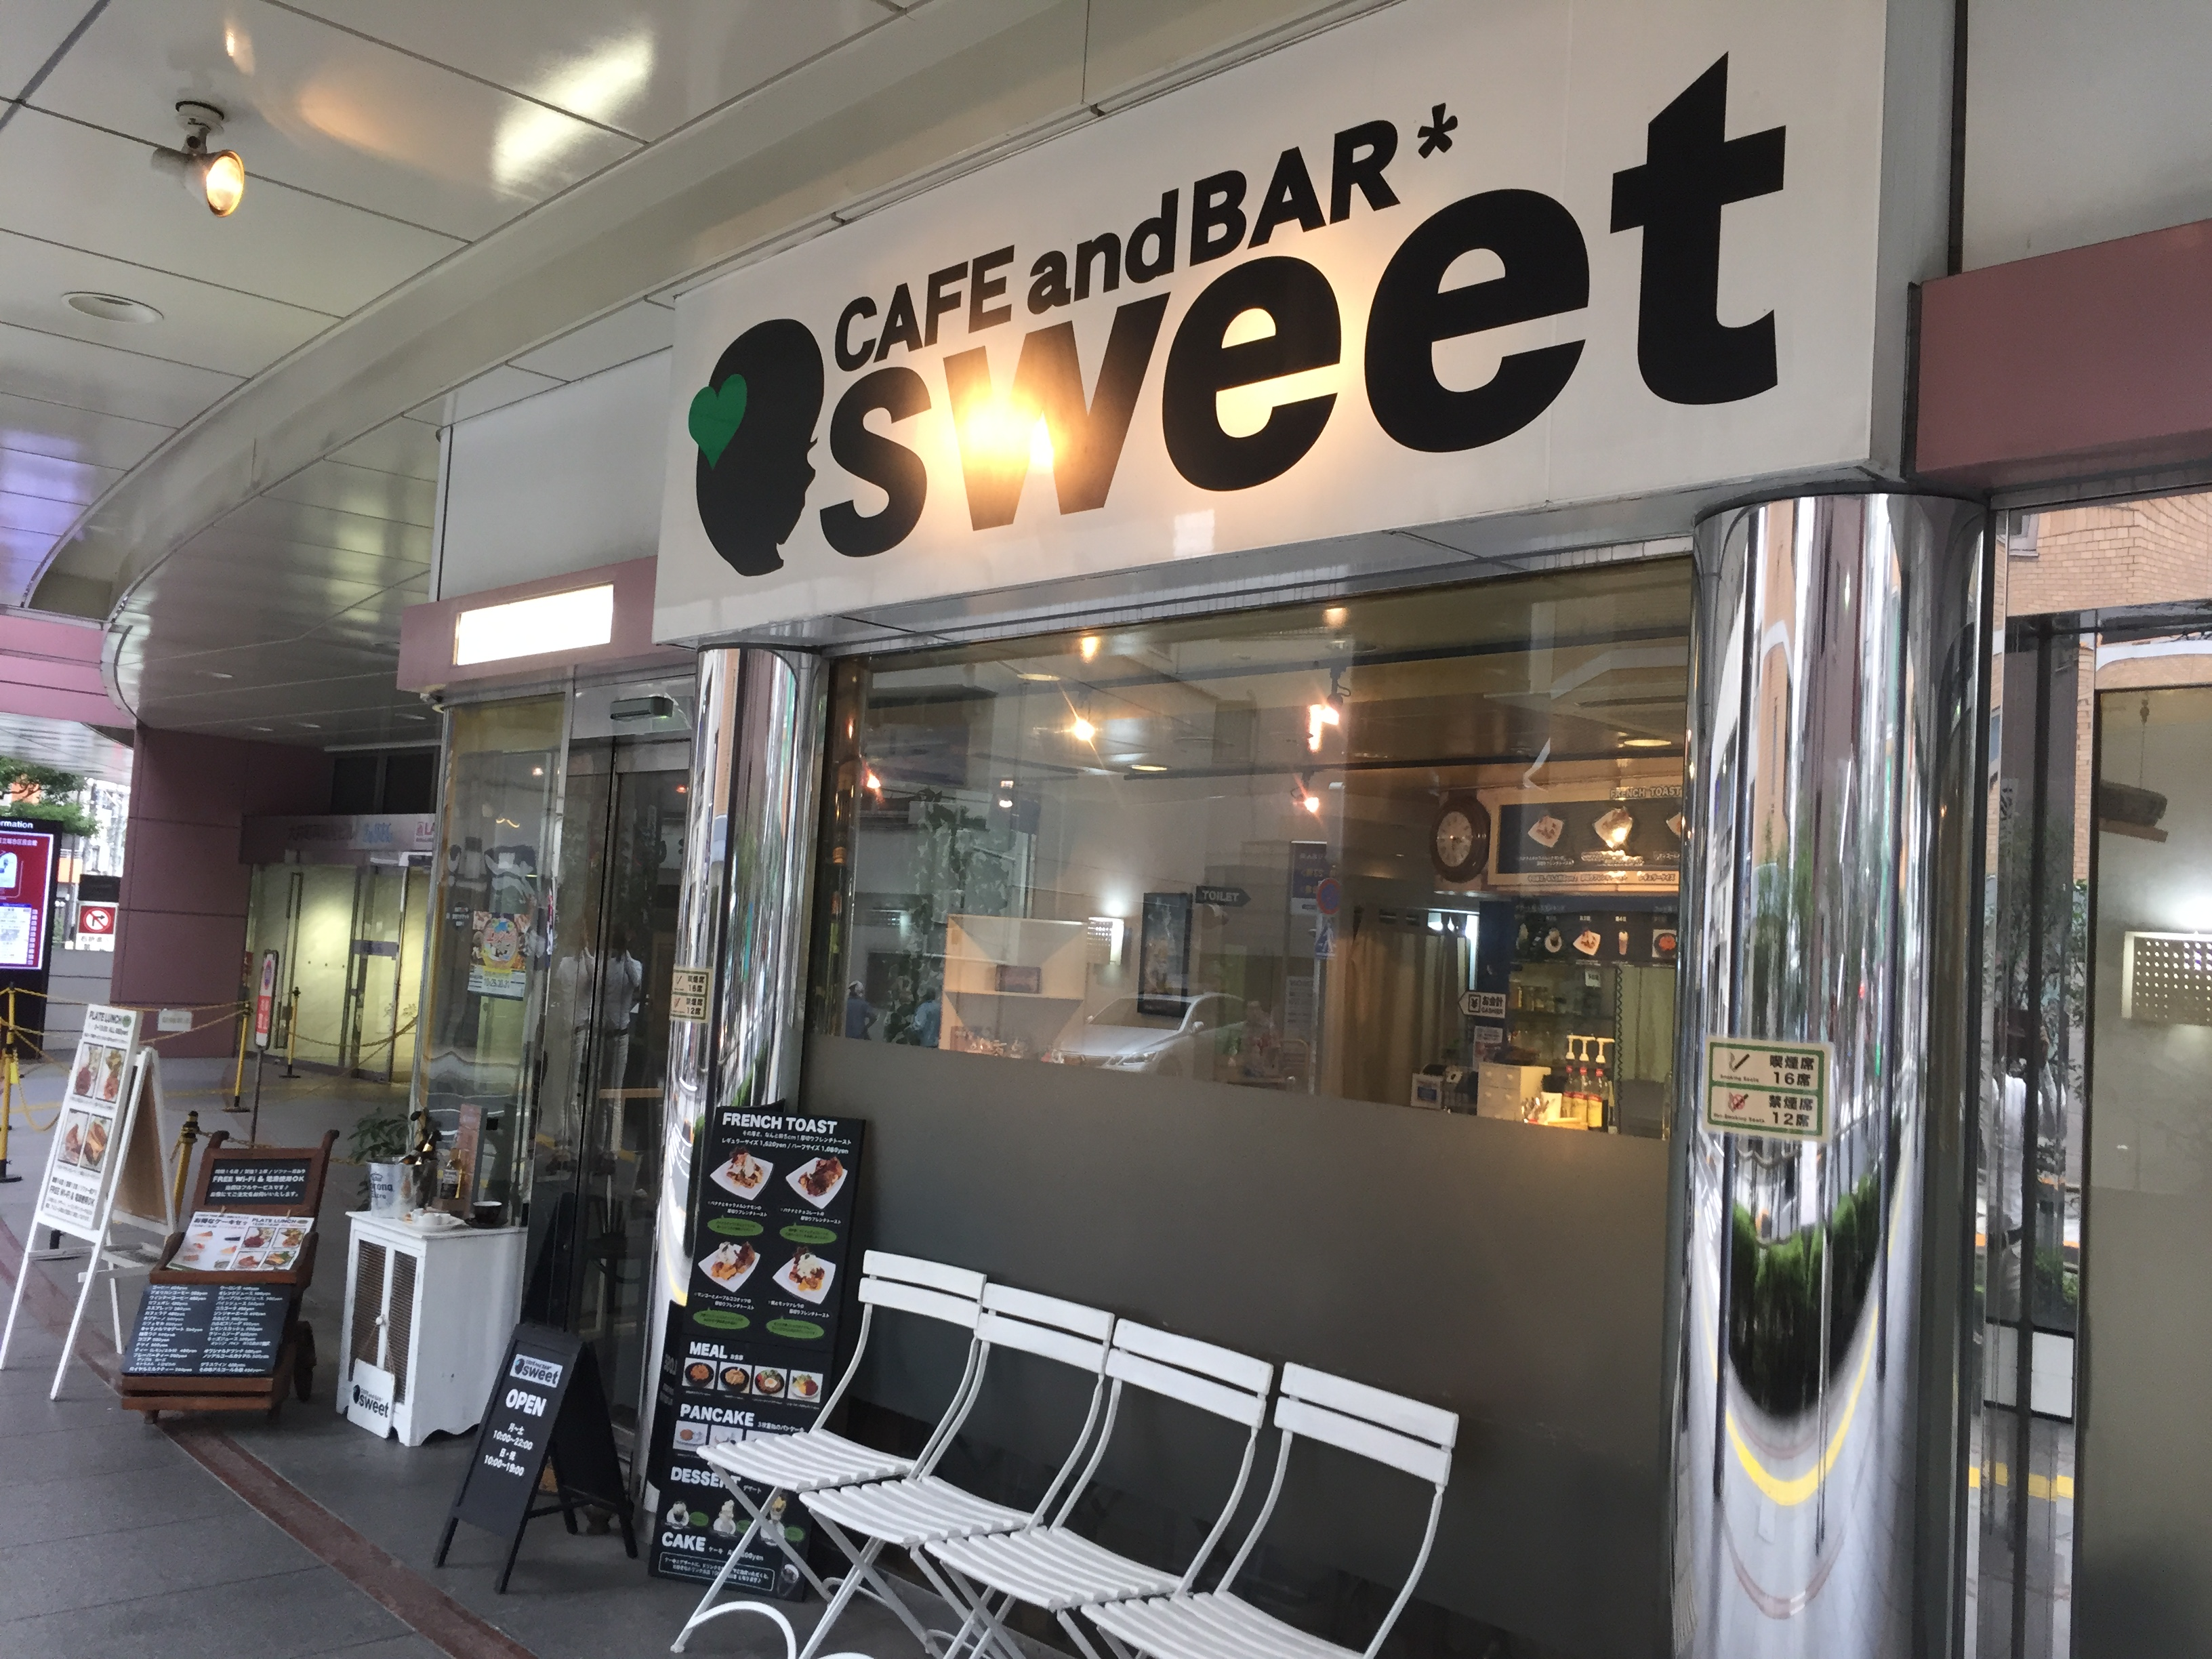 CAFE and BAR sweet 電源